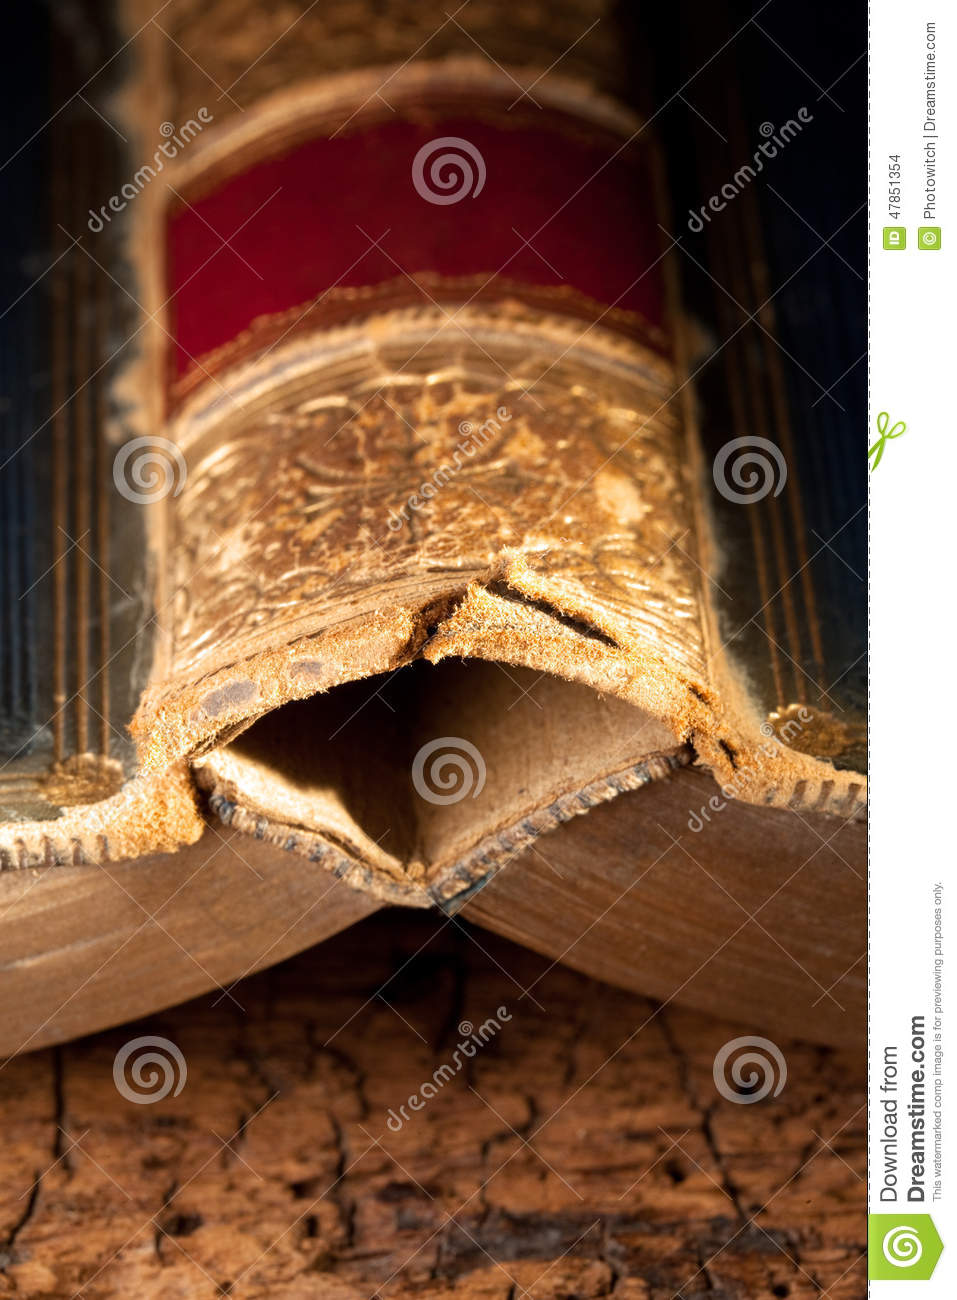 dusty old book cover stock photo  image of open  bible